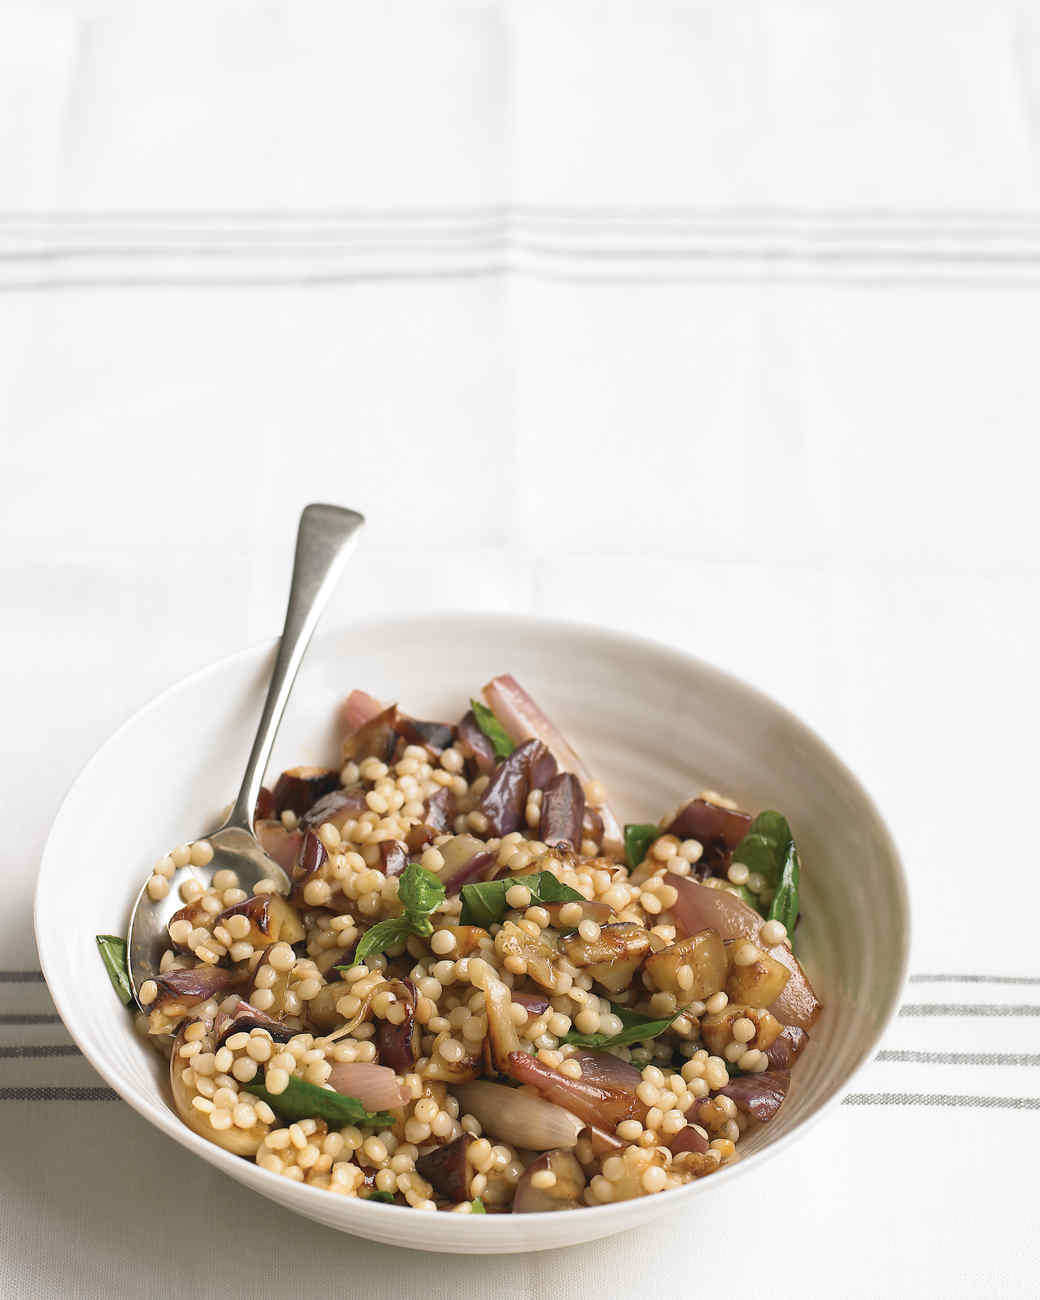 Eggplant Salad with Israeli Couscous and Basil